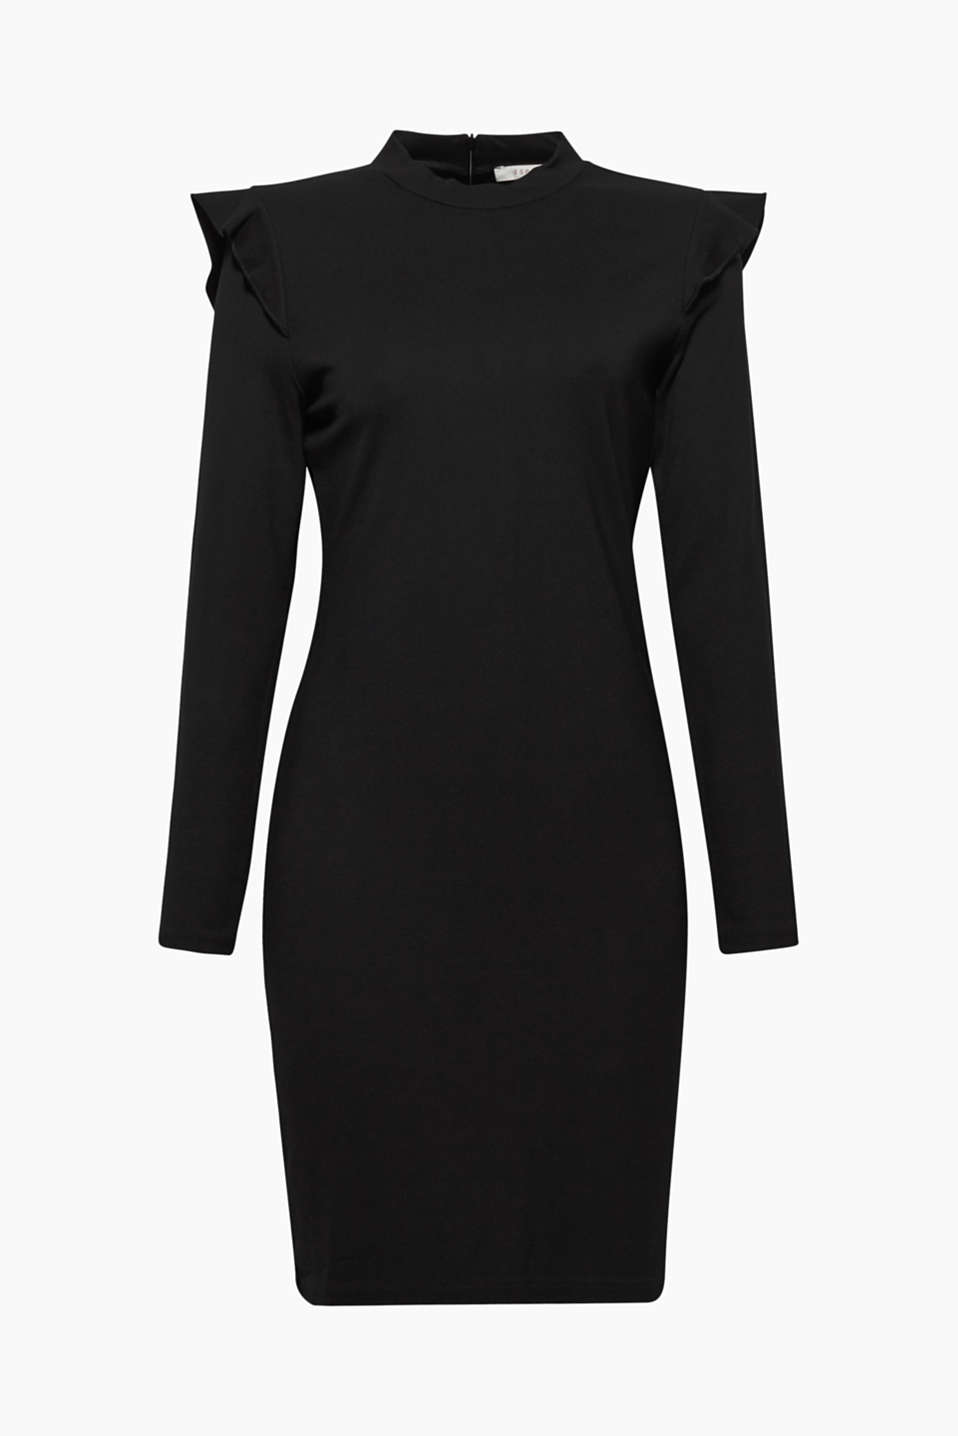 The frills on the shoulders give this little black dress made of heavy jersey a new look!